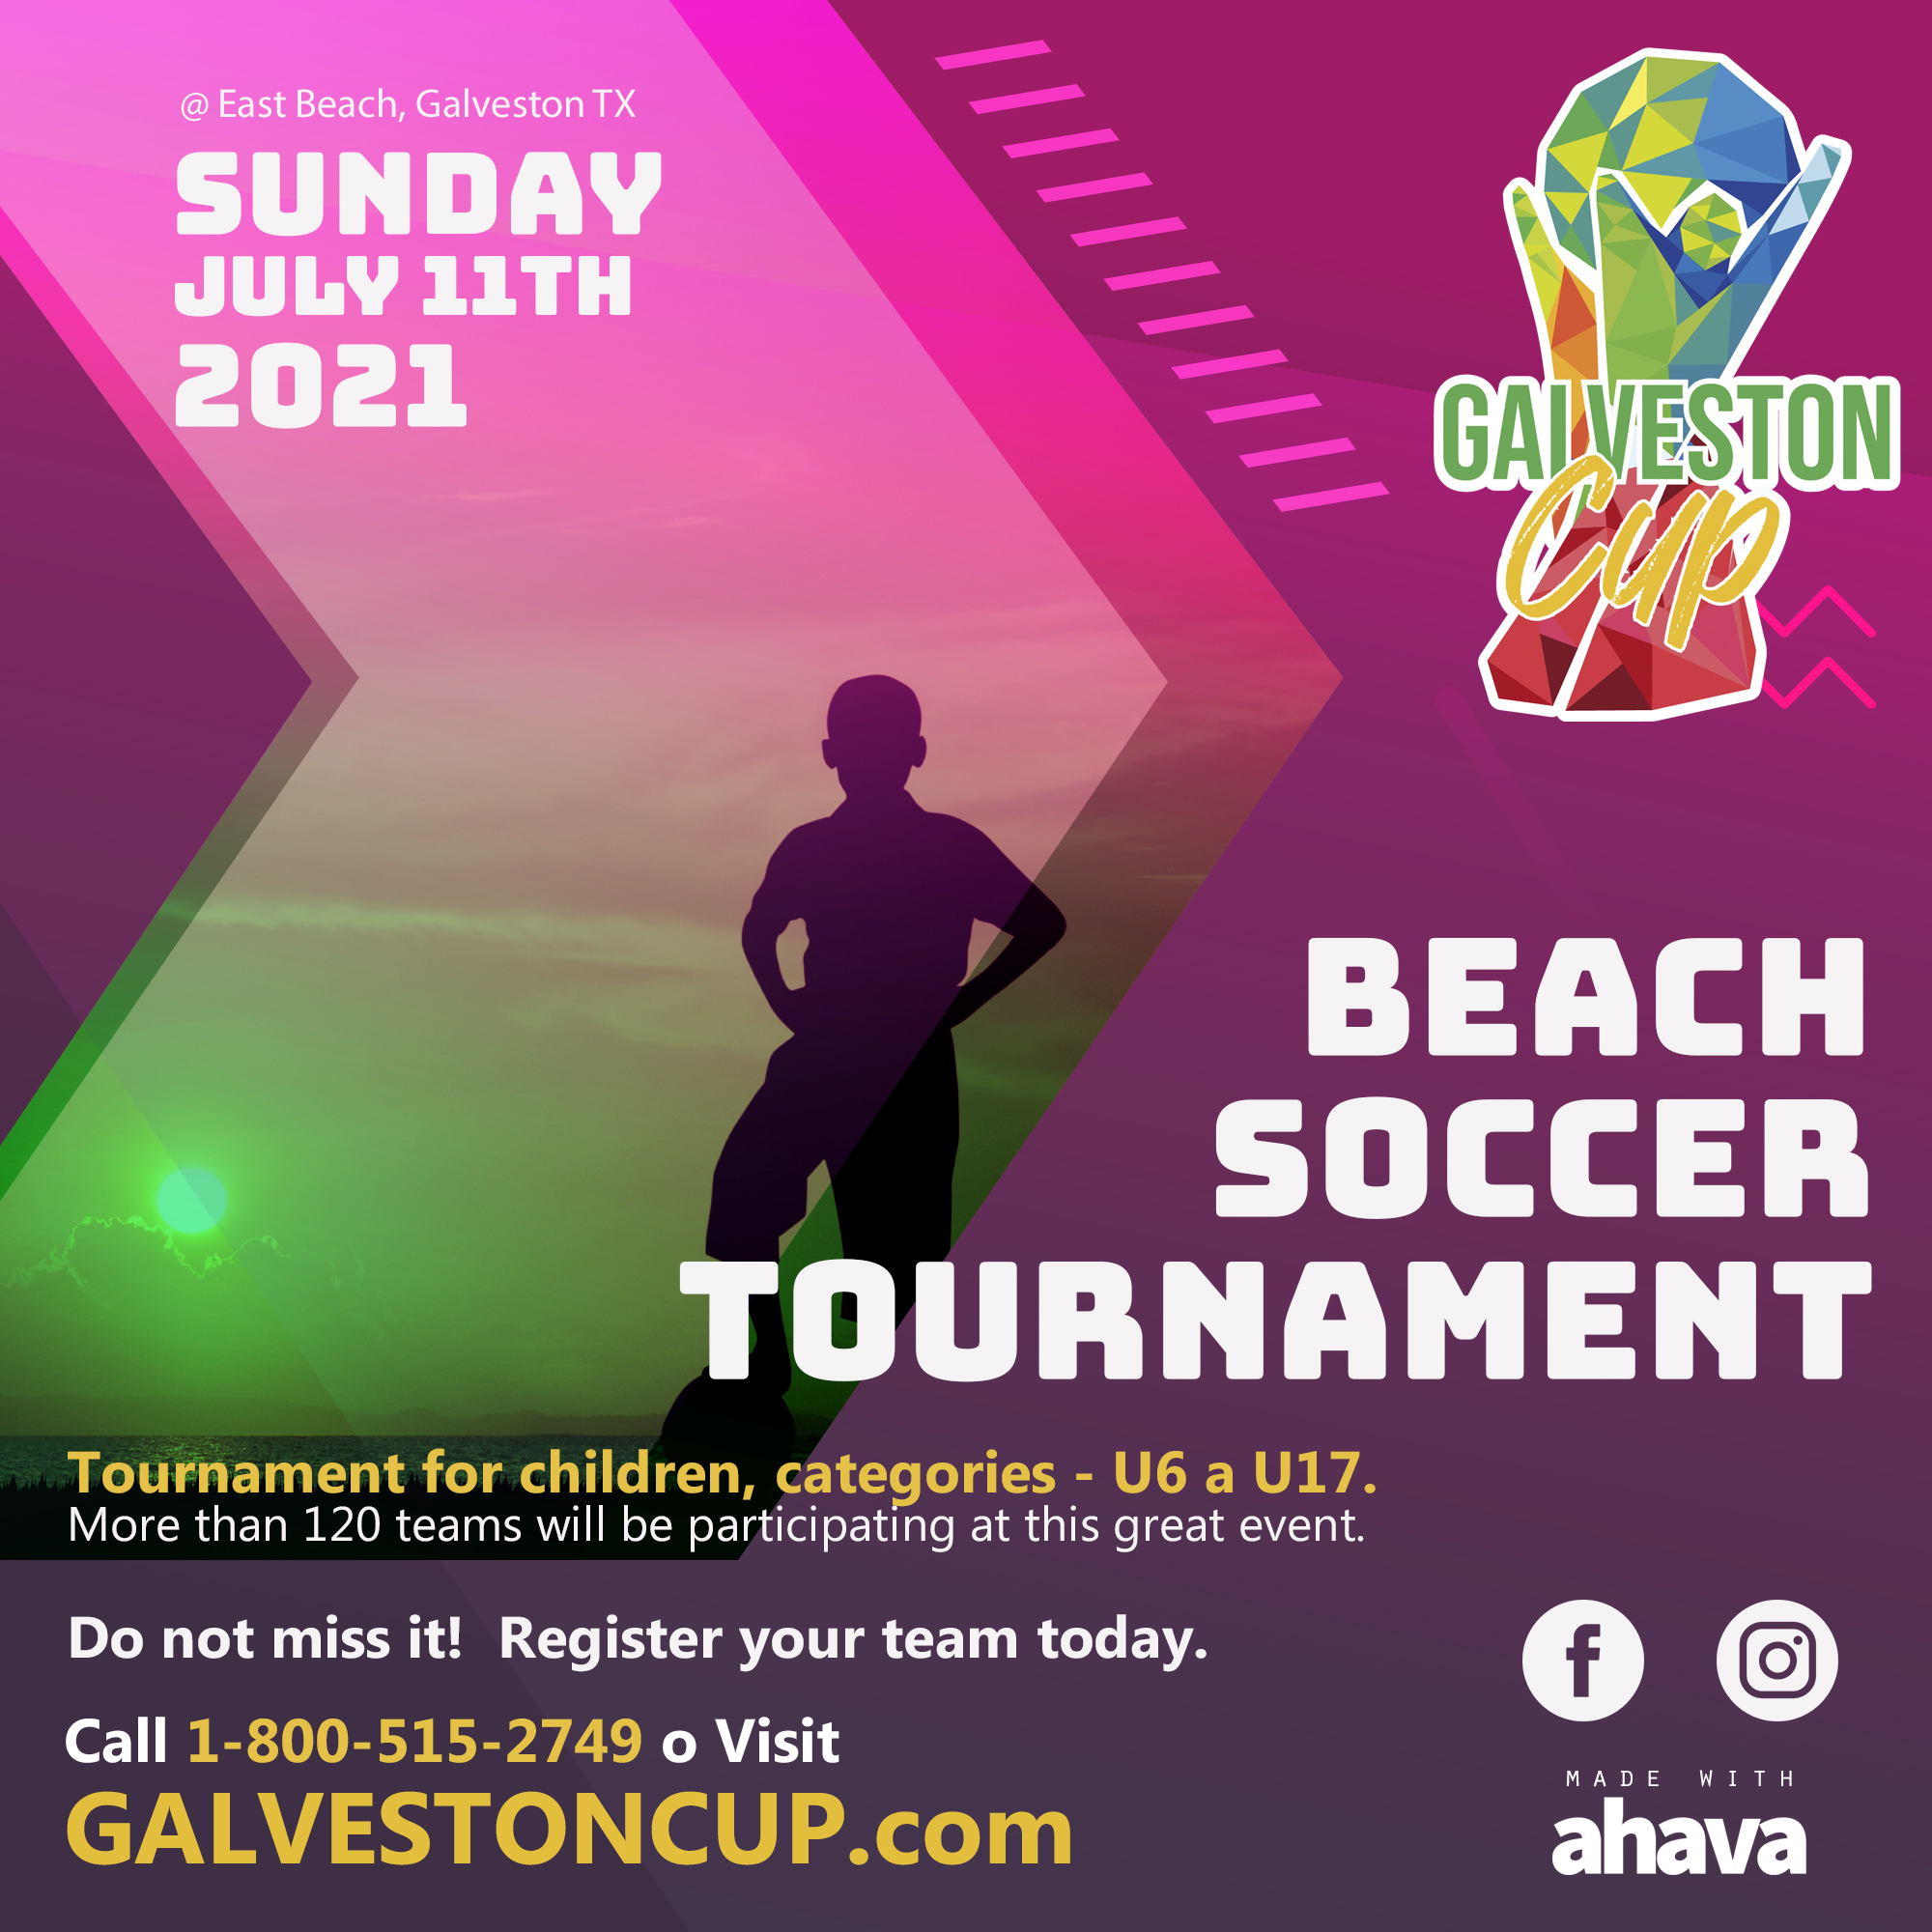 The Best Beach Soccer Tournament Arrives to the City of Galveston, Texas